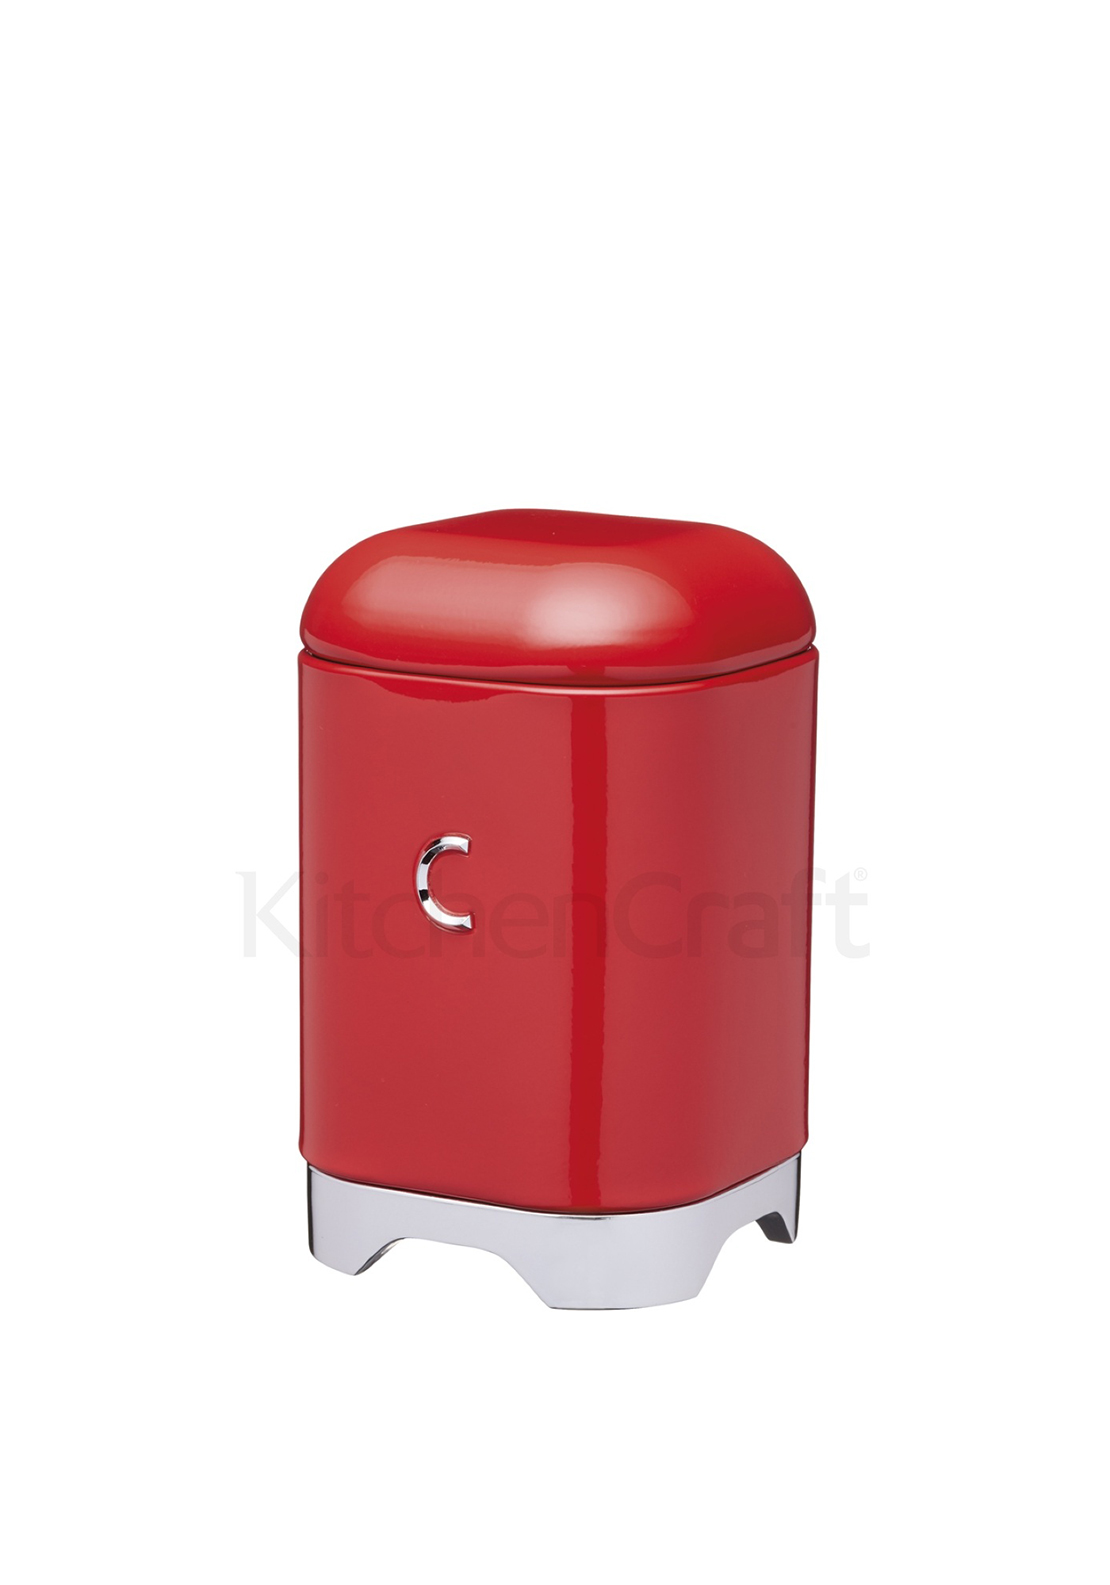 Lovello Scarlet Coffee Tin 11 x 11 x 18cm - Steel